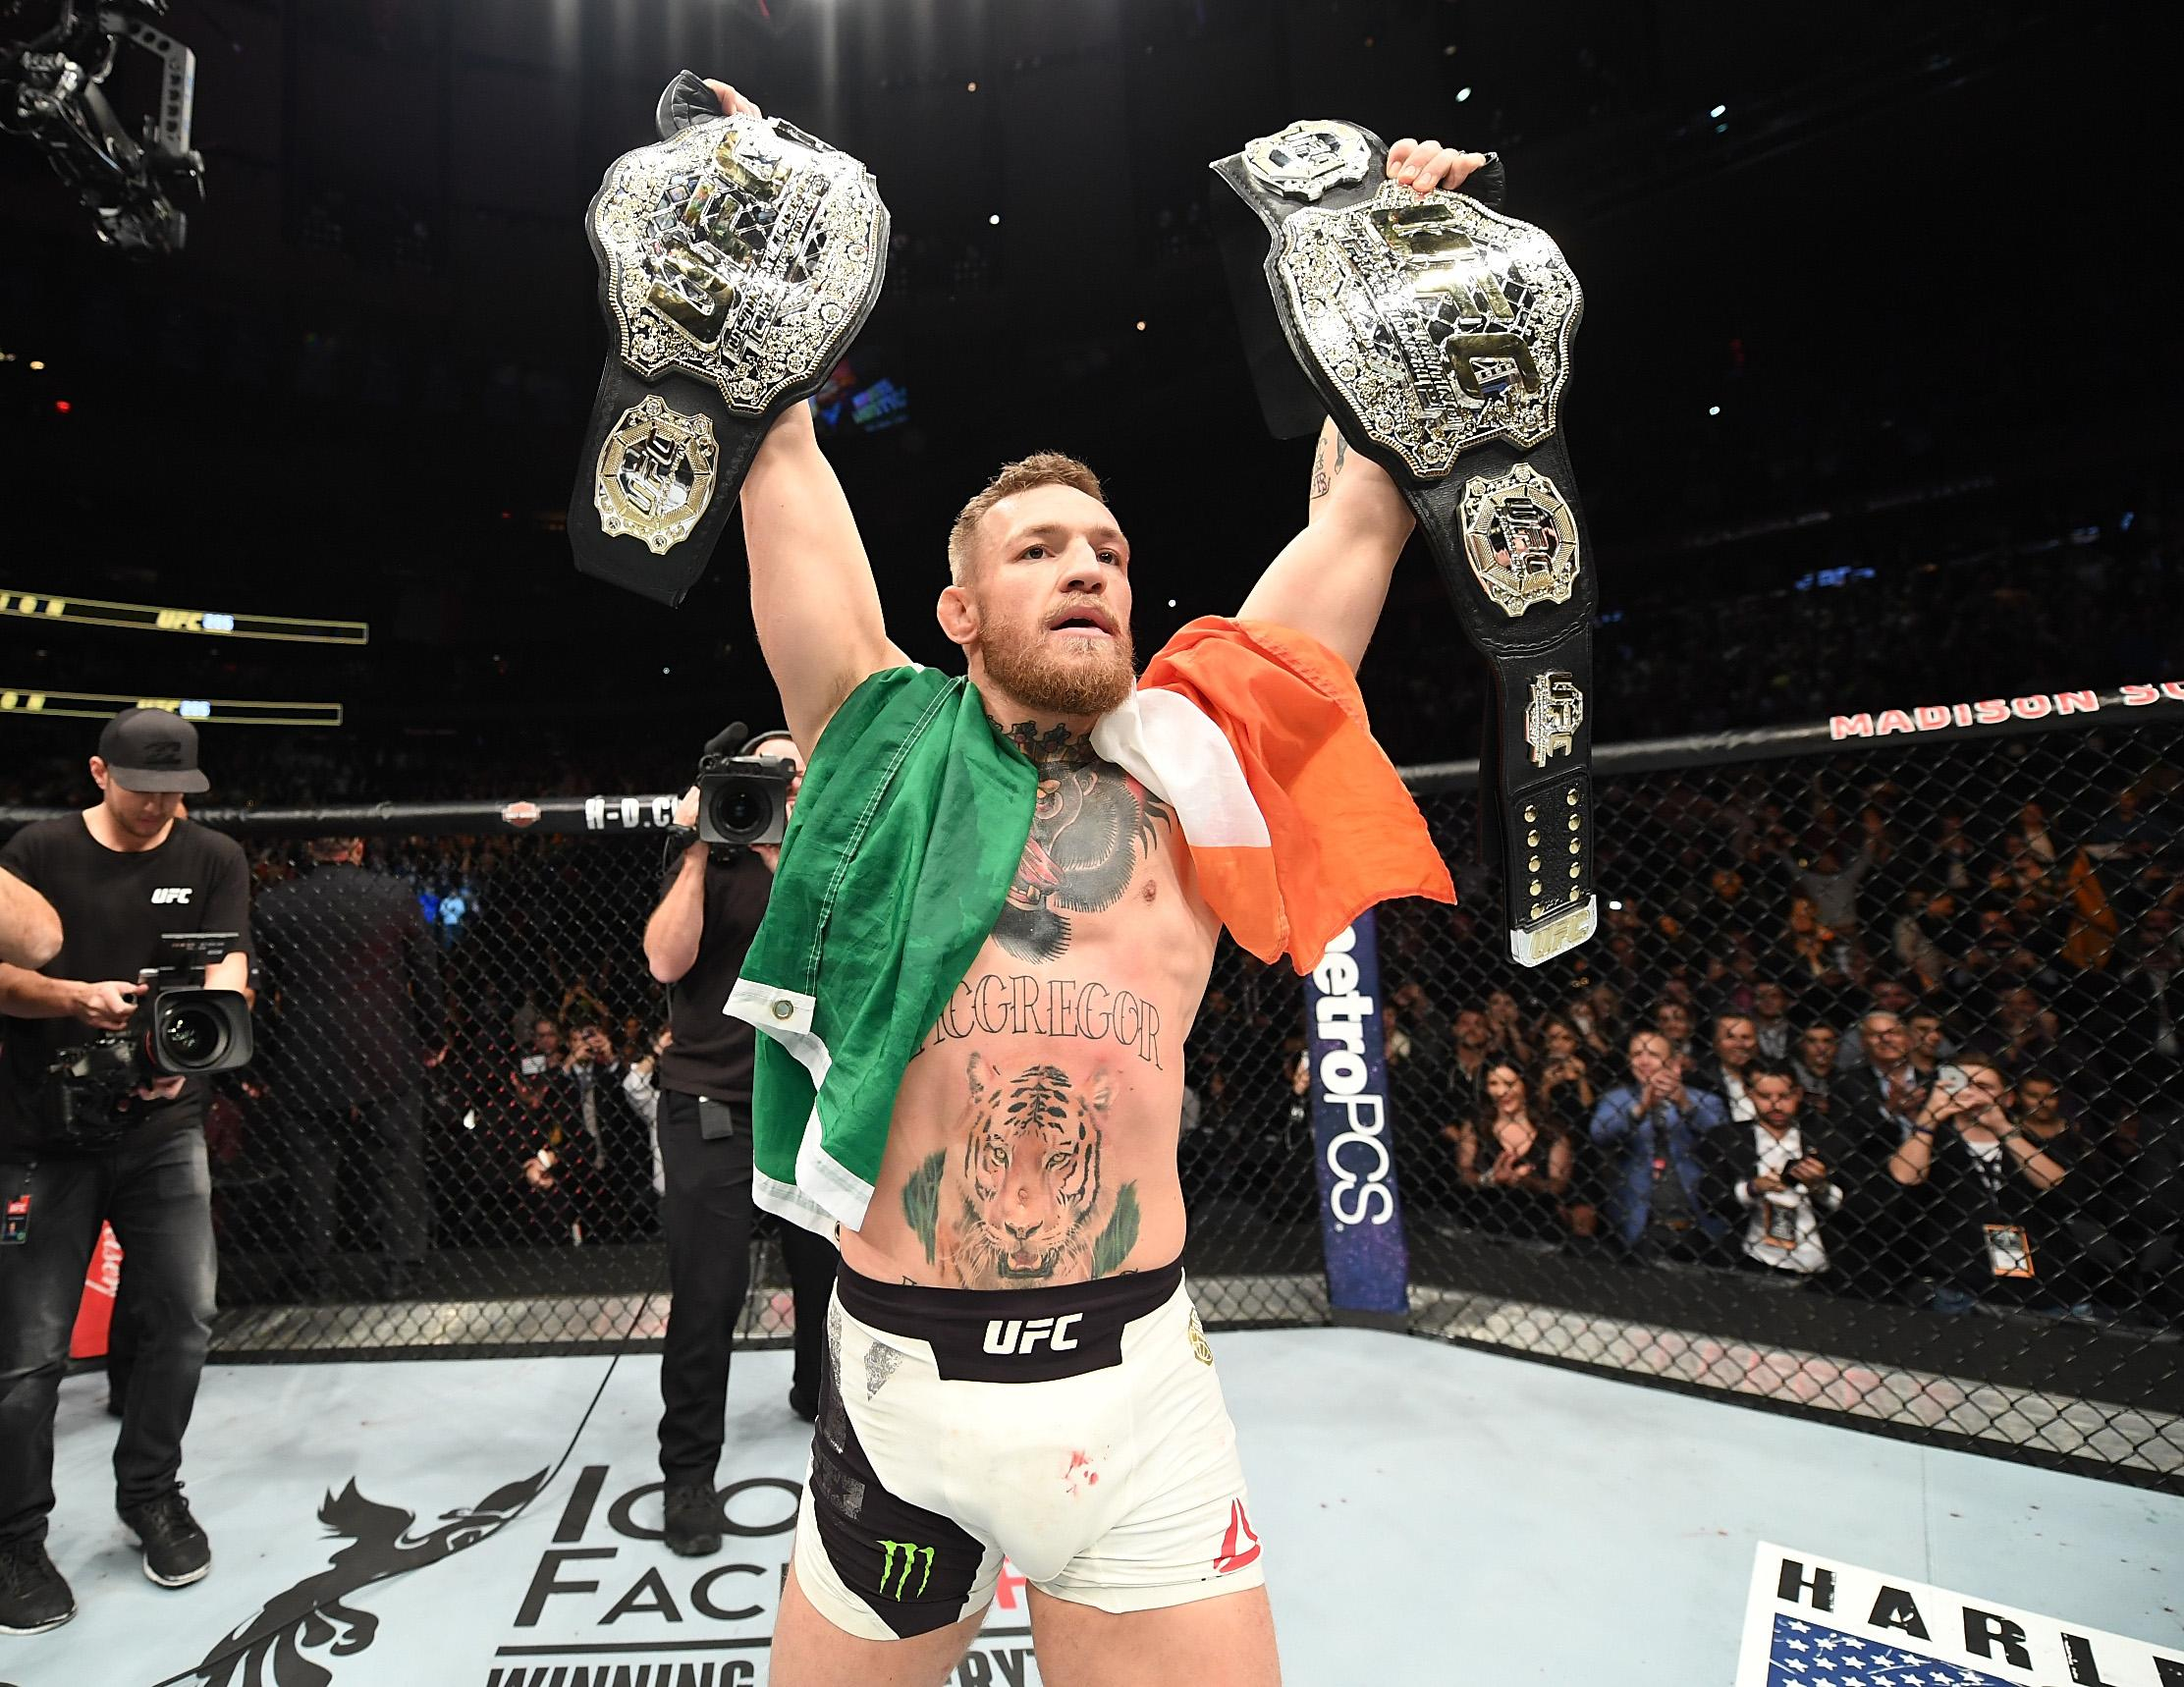 Conor McGregor is a two-weight world champion in UFC